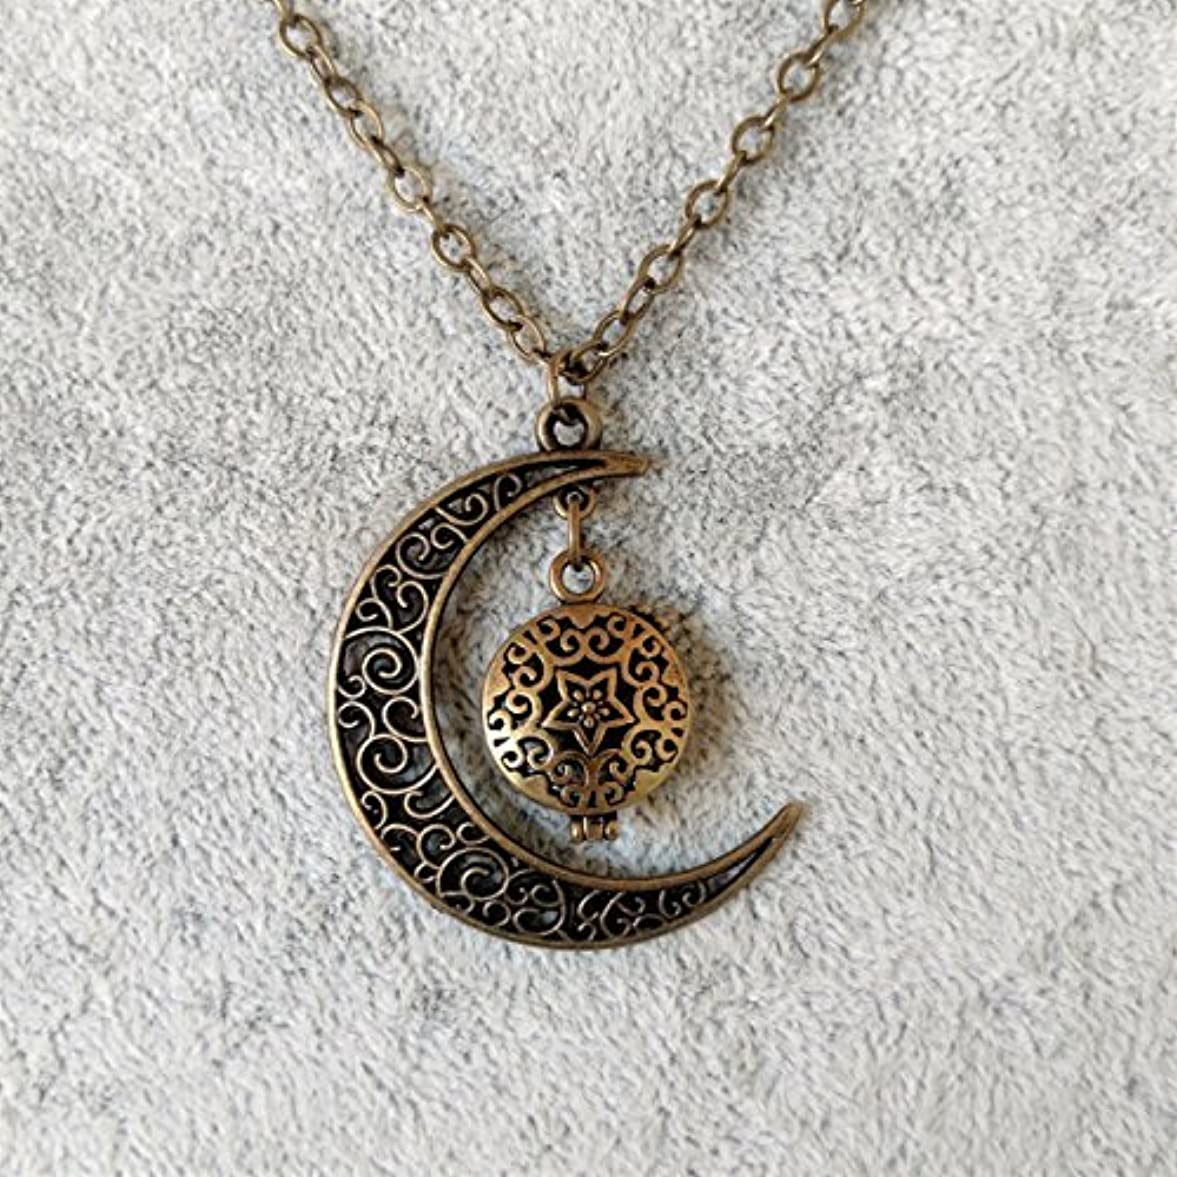 ガード活気づくライブLunar Crescent Moon with Small Bronze-tone Locket Aromatherapy Necklace Essential Oil Diffuser Locket Pendant...